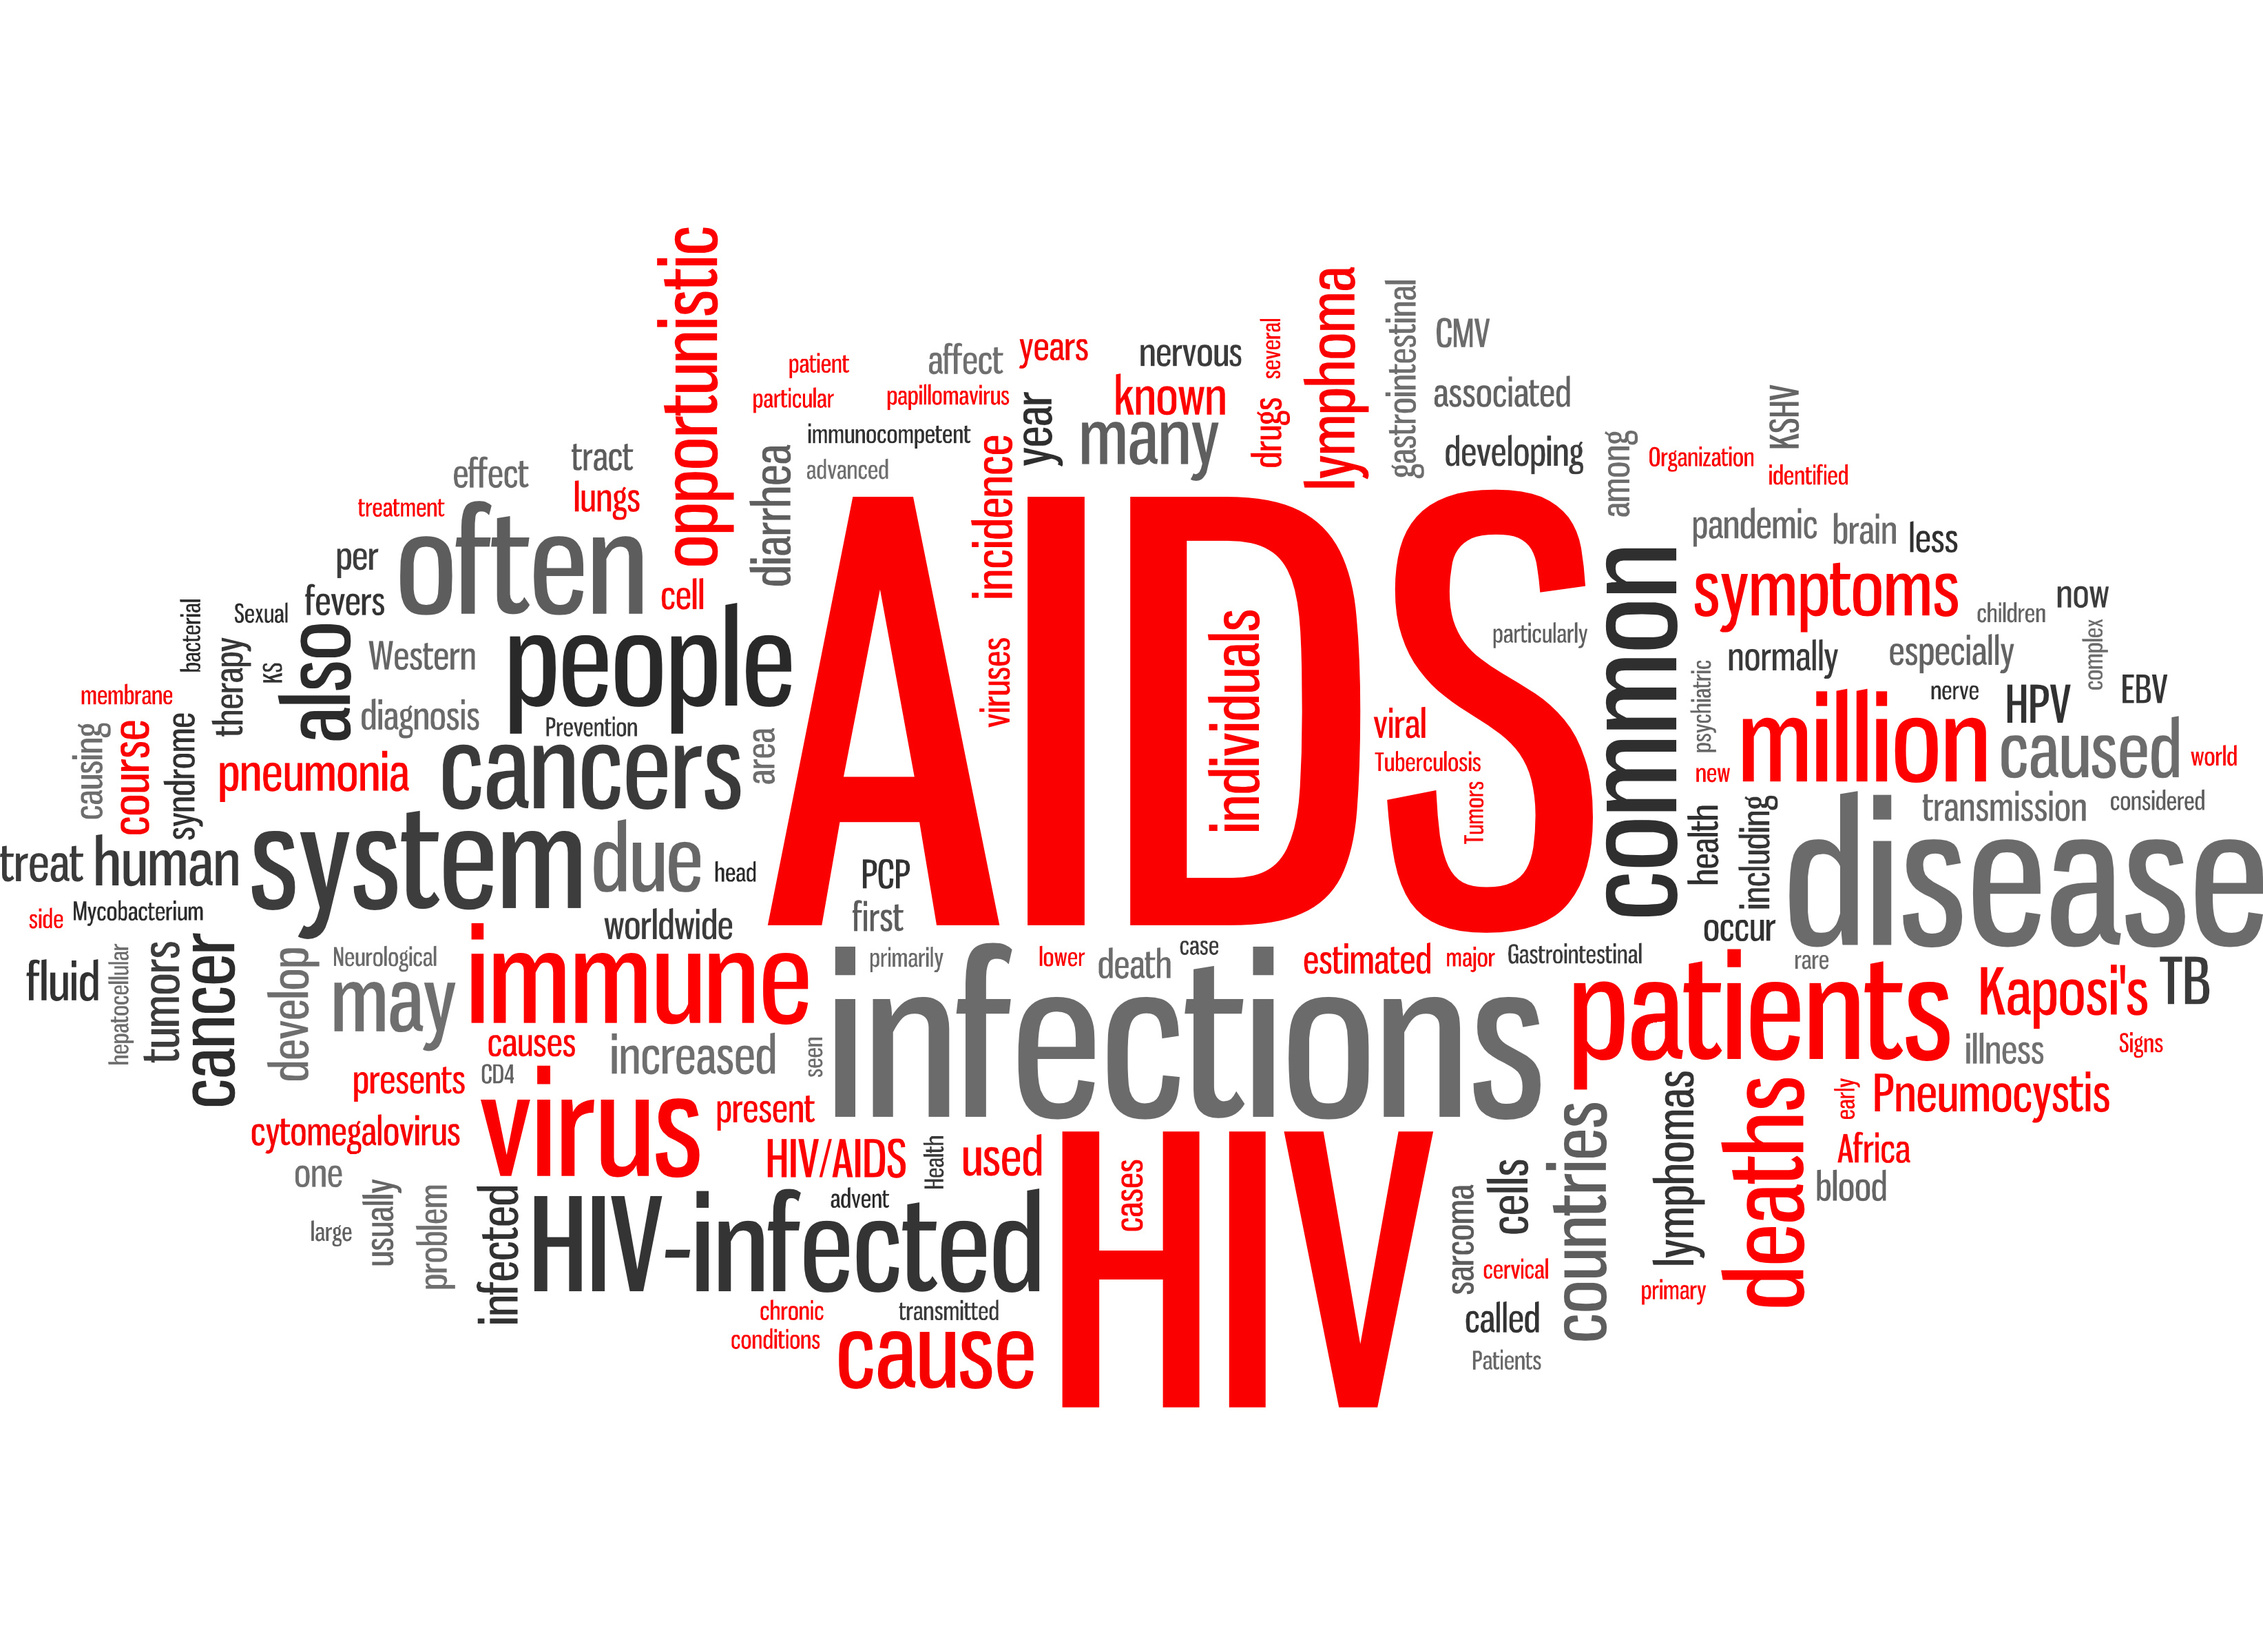 an article about hivaids Human immunodeficiency virus (hiv) is the virus that causes aids when a person becomes infected with hiv, the virus attacks and weakens the immune system as the immune system weakens, the person is at risk of getting life-threatening infections and cancers.